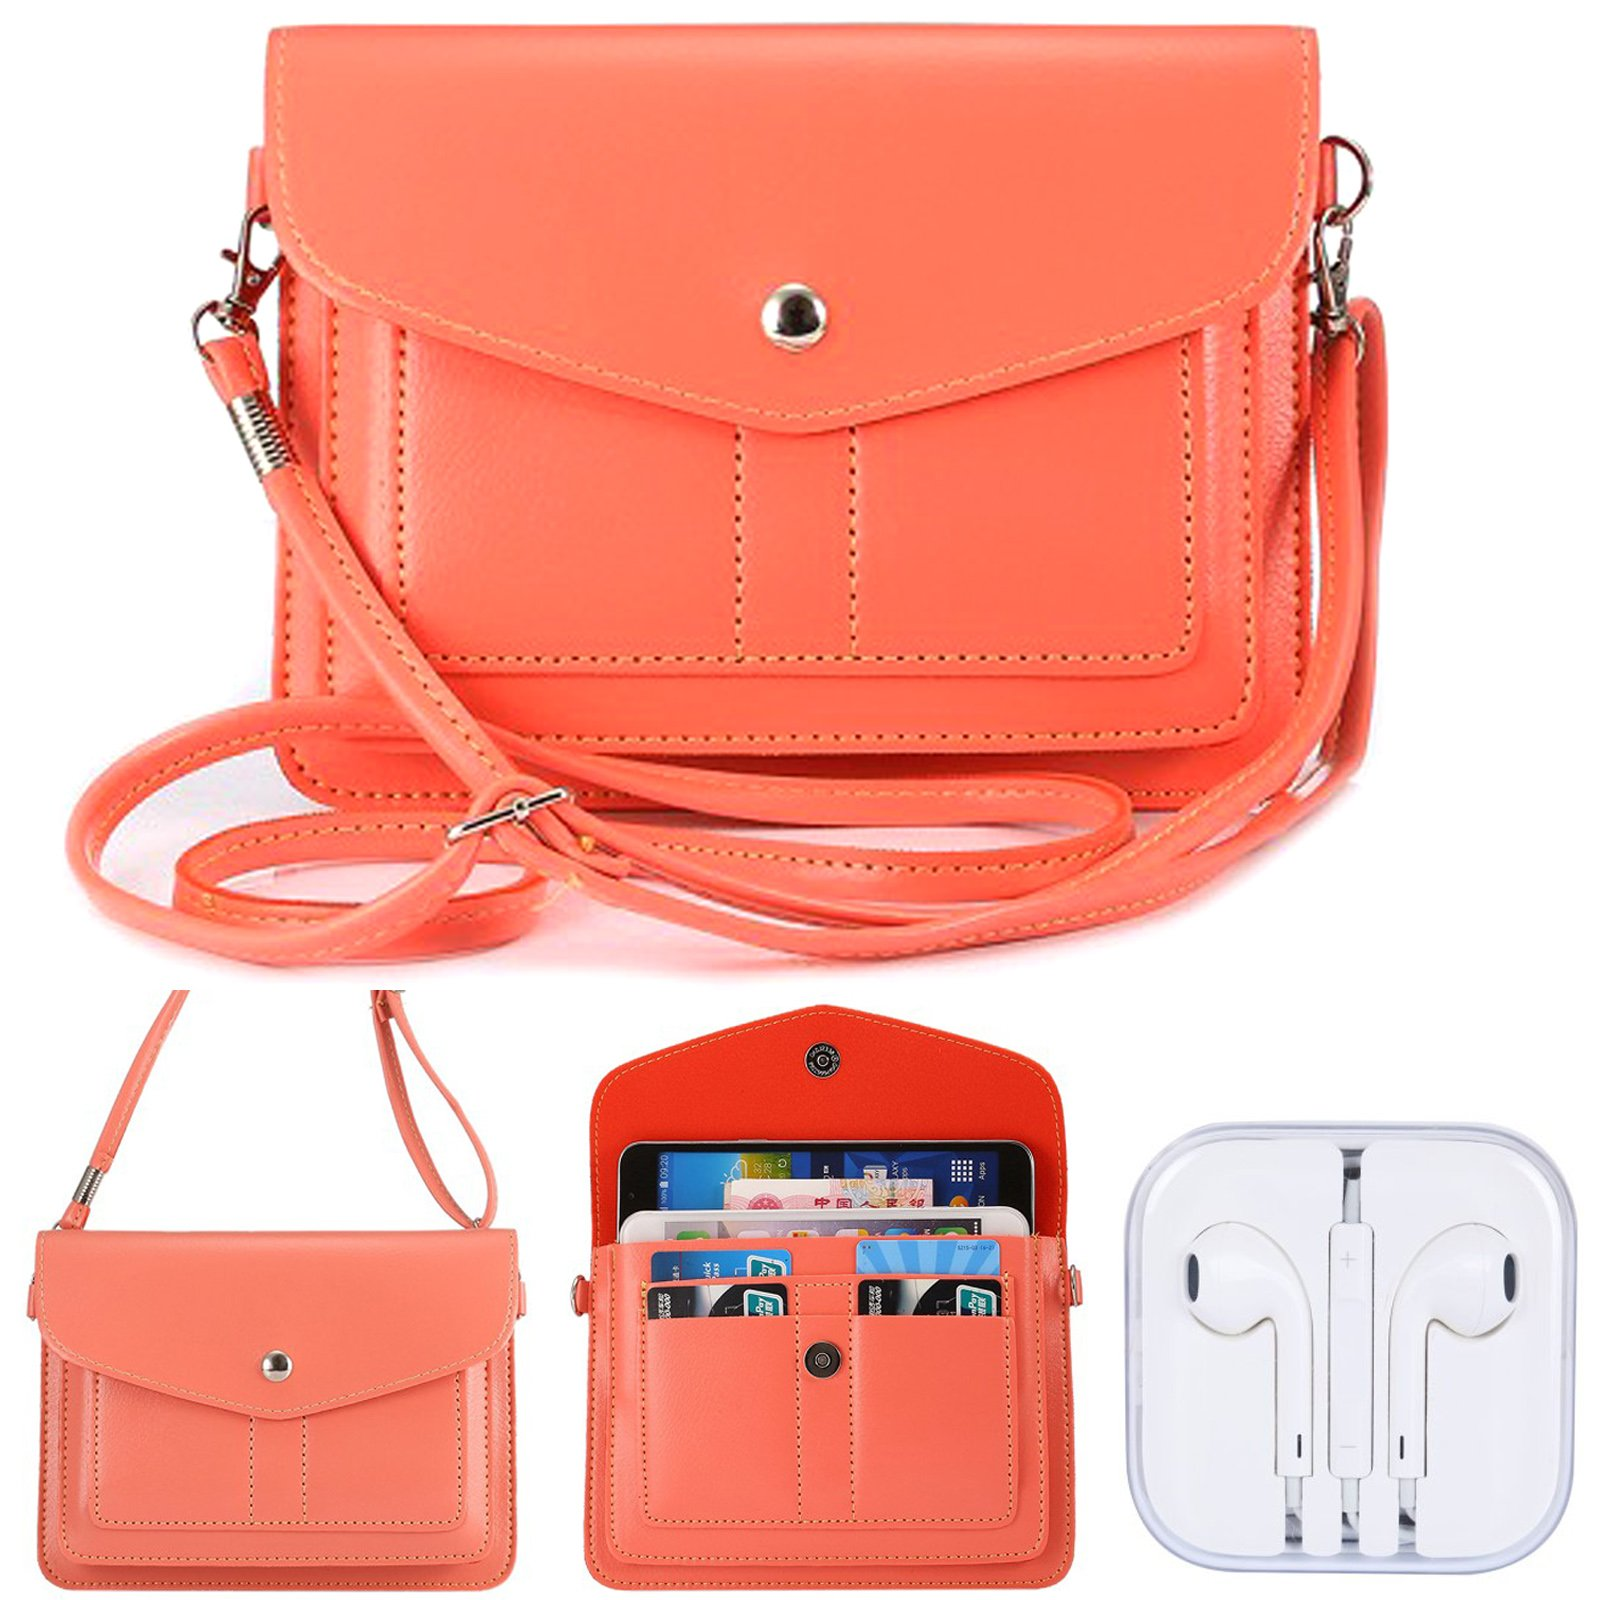 Dteck Phone Bag/Pouch, (TM) Multipurpose Convenient Crossbody Purse with Shoulder Strap for Apple iPhone & Samsung Galaxy Series and other Smartphones Under 6.3 inch - H-Pink